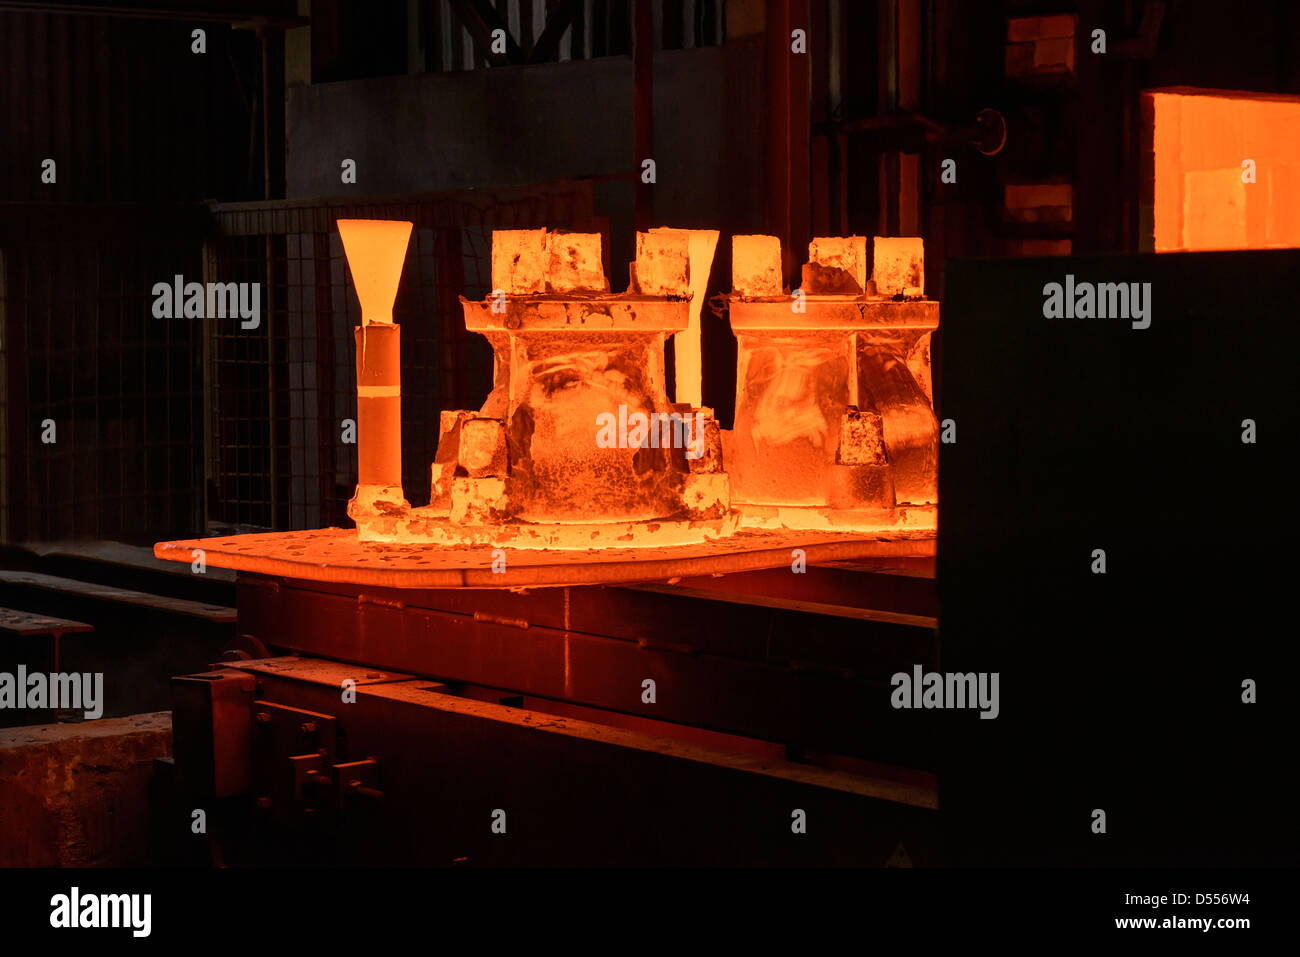 Metal casings glowing in foundry - Stock Image